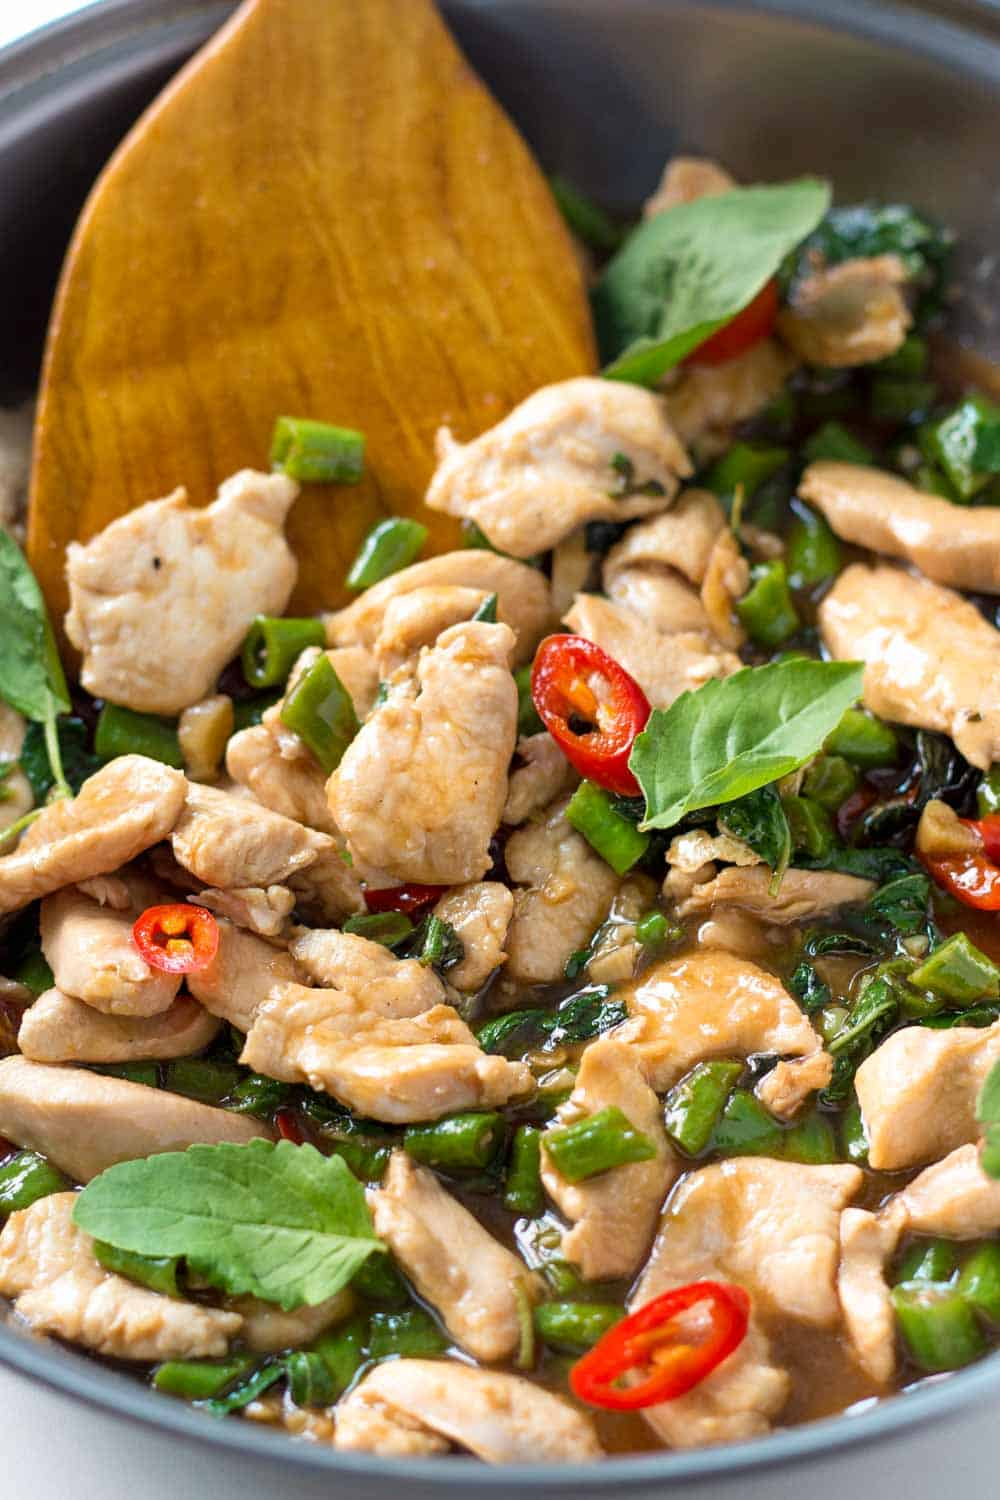 This popular Thai stir fry is one I've only recently discovered for ...